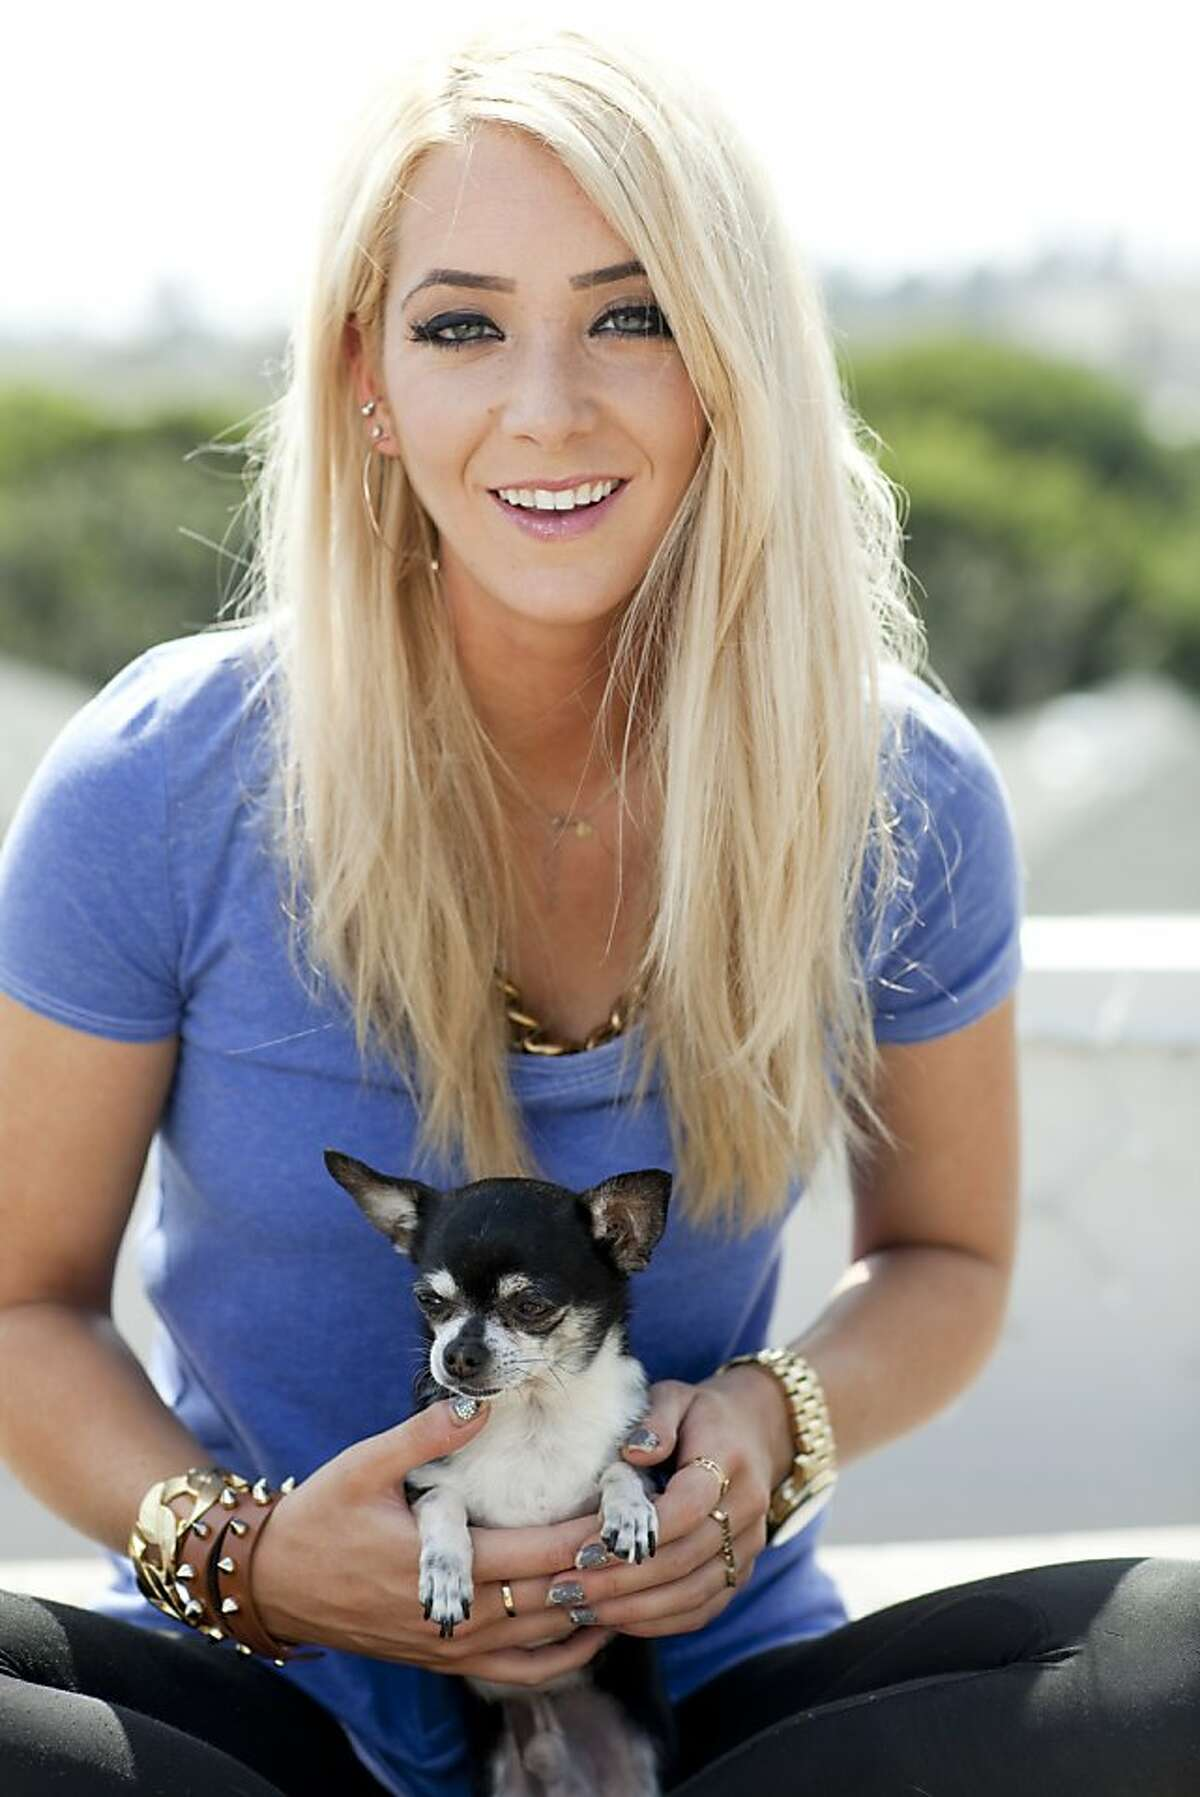 Jenna Marbles, whose real name is Jenna Mourey, with her namesake Chihuahua, Marbles, on the roof of her town house in Santa Monica, Calif., March 26th, 2013.